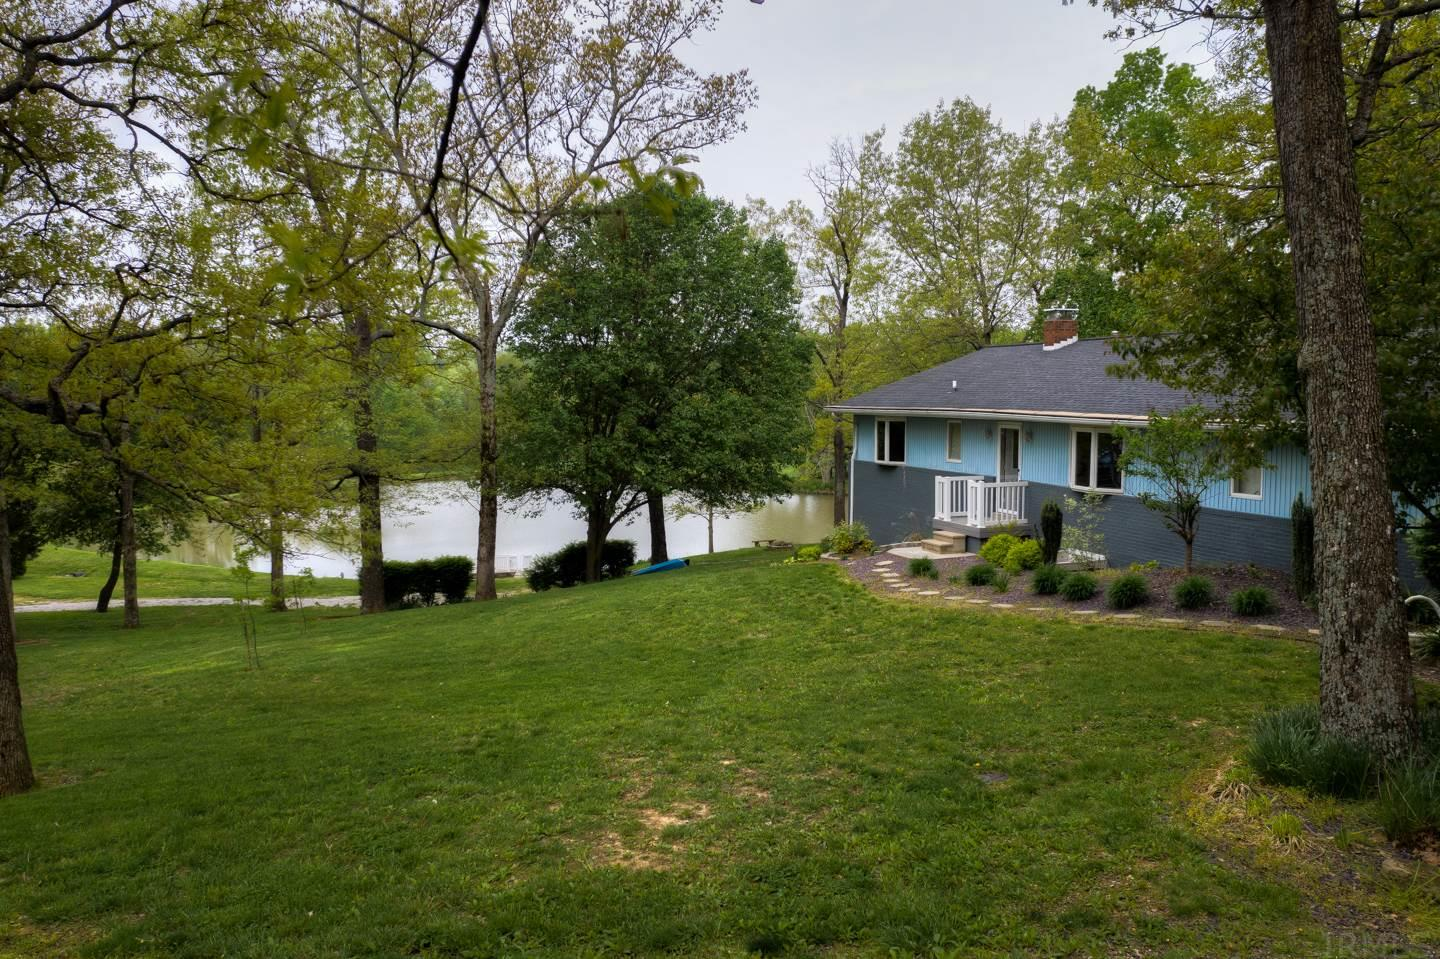 OPEN HOUSE - SUNDAY MAY 19TH 1-3 p.m. Eastern Time. New Reduced Price. Come out & see this very well maintained ranch home on 8 ACRES with it's own 1.5+/- acre lake in an extremely quiet & serene setting. Great country location and yet less than 3 miles to Ferdinand and less than 4 miles to SR 231. The large kitchen has tons of cabinets & counter top space & offers lots of room to cook & bake. The dining area allows space to stretch a table & host family holidays. From the very large and spacious living room walk out to the deck overlooking the lake and wooded acreage. What a great place to enjoy your morning coffee or an evening beverage after a long day at work. First floor laundry makes laundry a breeze. Enjoy the huge family and games room with wood burning fireplace in the finished lower level which offers new carpet & modern color scheme. The lower level bathroom offers a new vanity with beautiful granite top. There is a very spacious 2 car attached garage and a 24 x 24 detached garage that has been resided in the past 2 years. It also has a large 10 x 16 yard barn. There is a 21' pier for fishing or mooring your peddle boat & john boat which is being included in the sale. There is also a great 7 x 12 dock with rails for fishing or just sitting & enjoying the beautiful views. If you like to relax in a peaceful country setting this is the place is for you!!